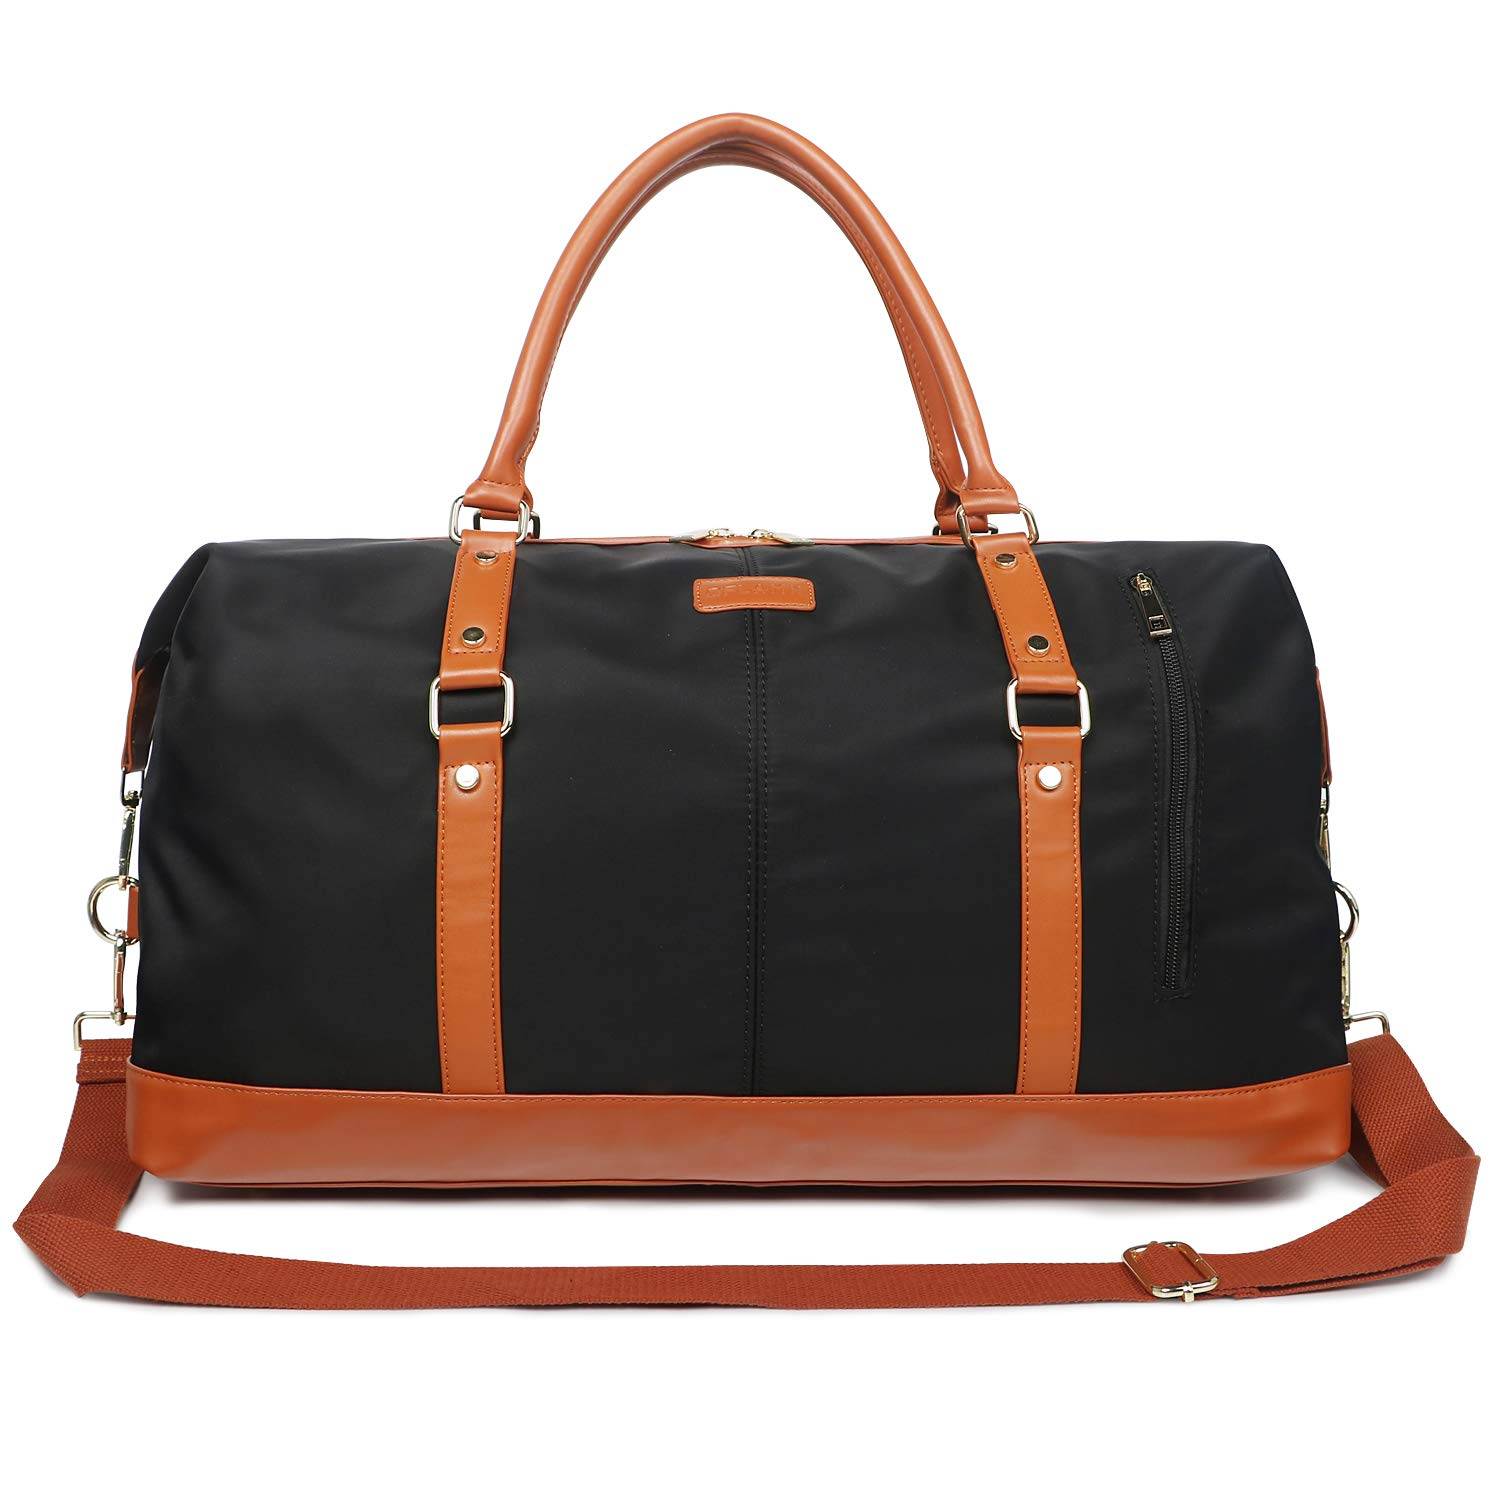 Oflamn Duffle Bag Canvas Leather Weekender Overnight Travel Carry On Bag (Black, X-Large) by Oflamn